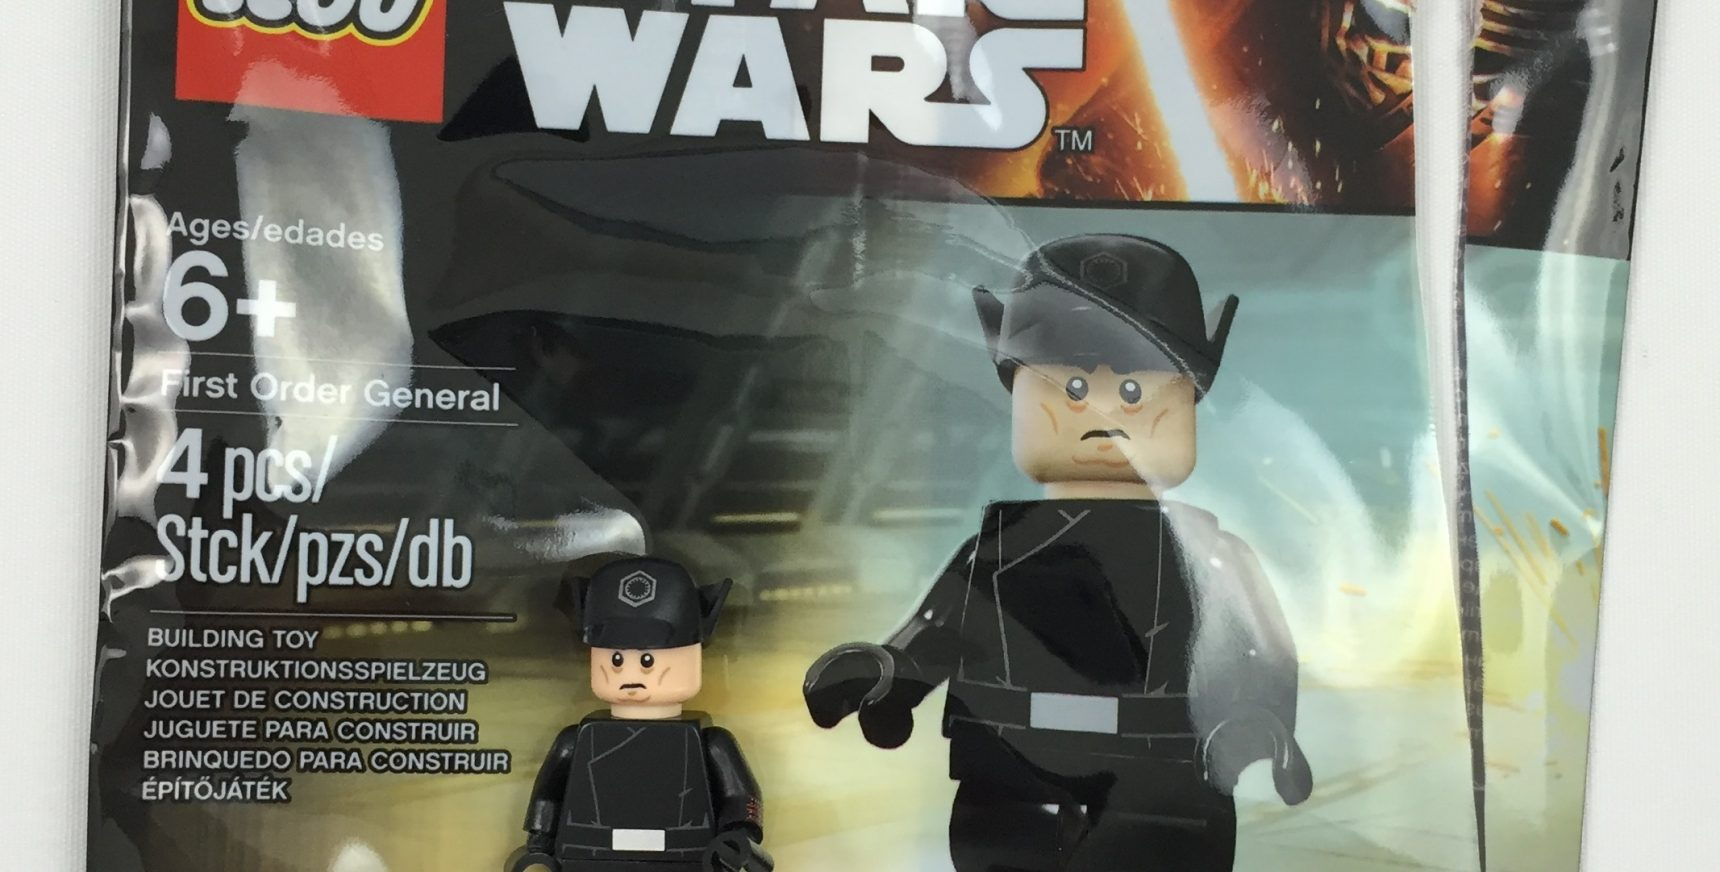 LEGO First Order General (5004406) – Unboxing & Review